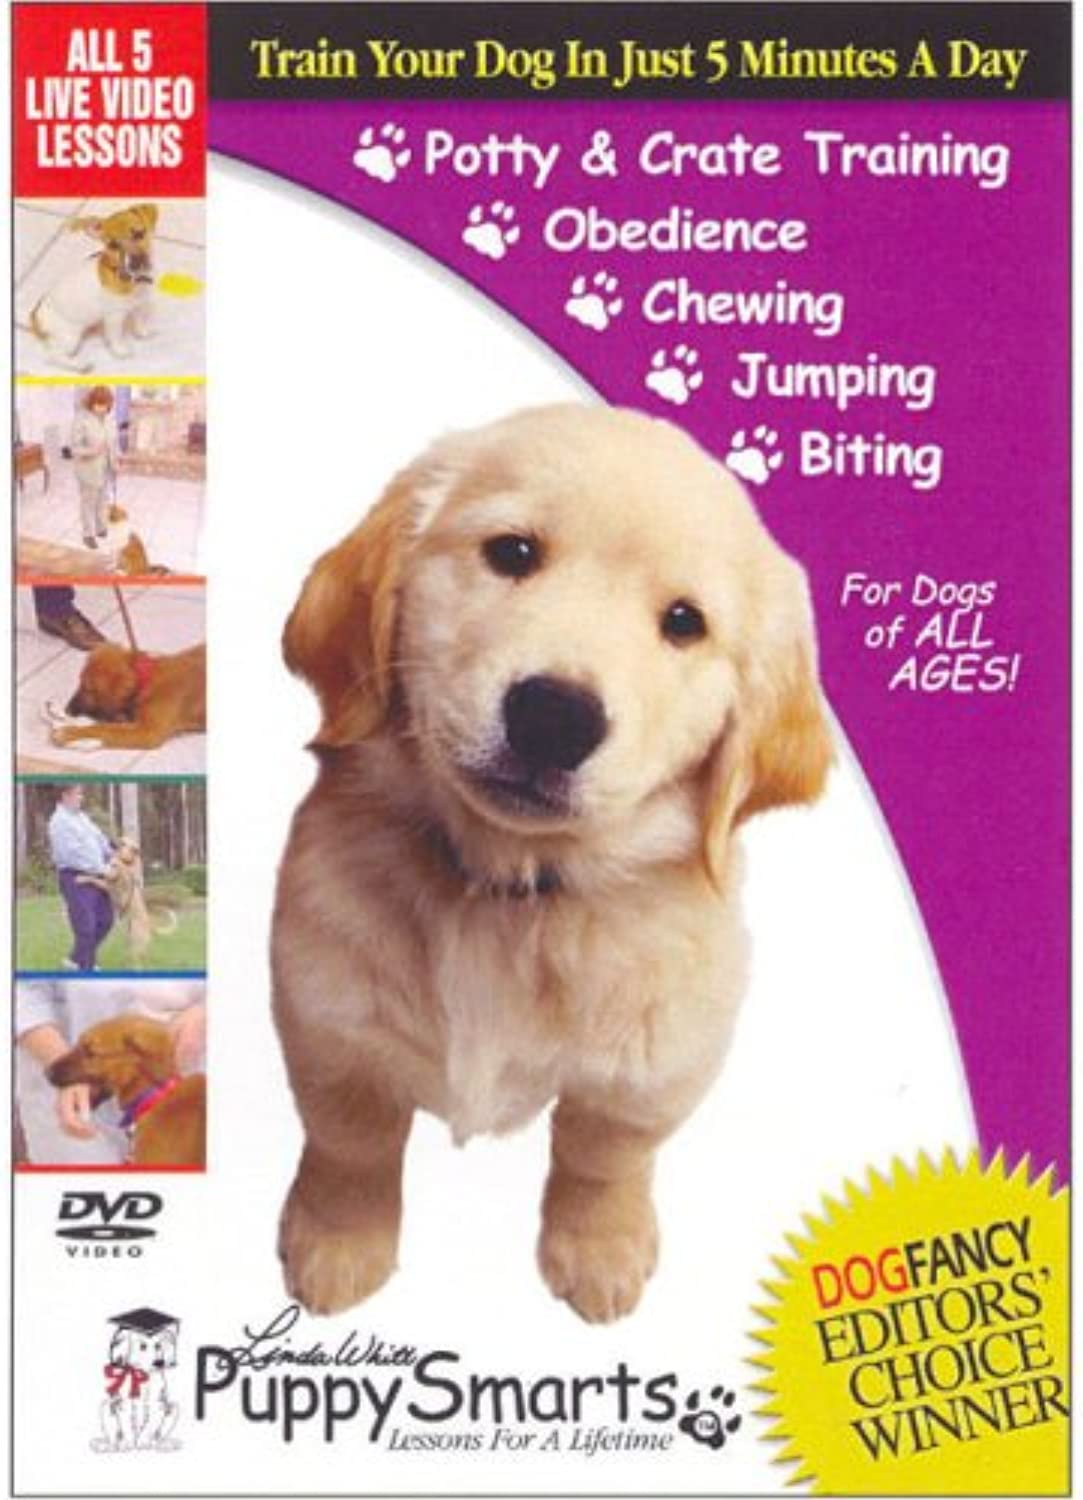 PUPPY SMARTS ALL 5 LESSONS ON VHS by PuppySmarts